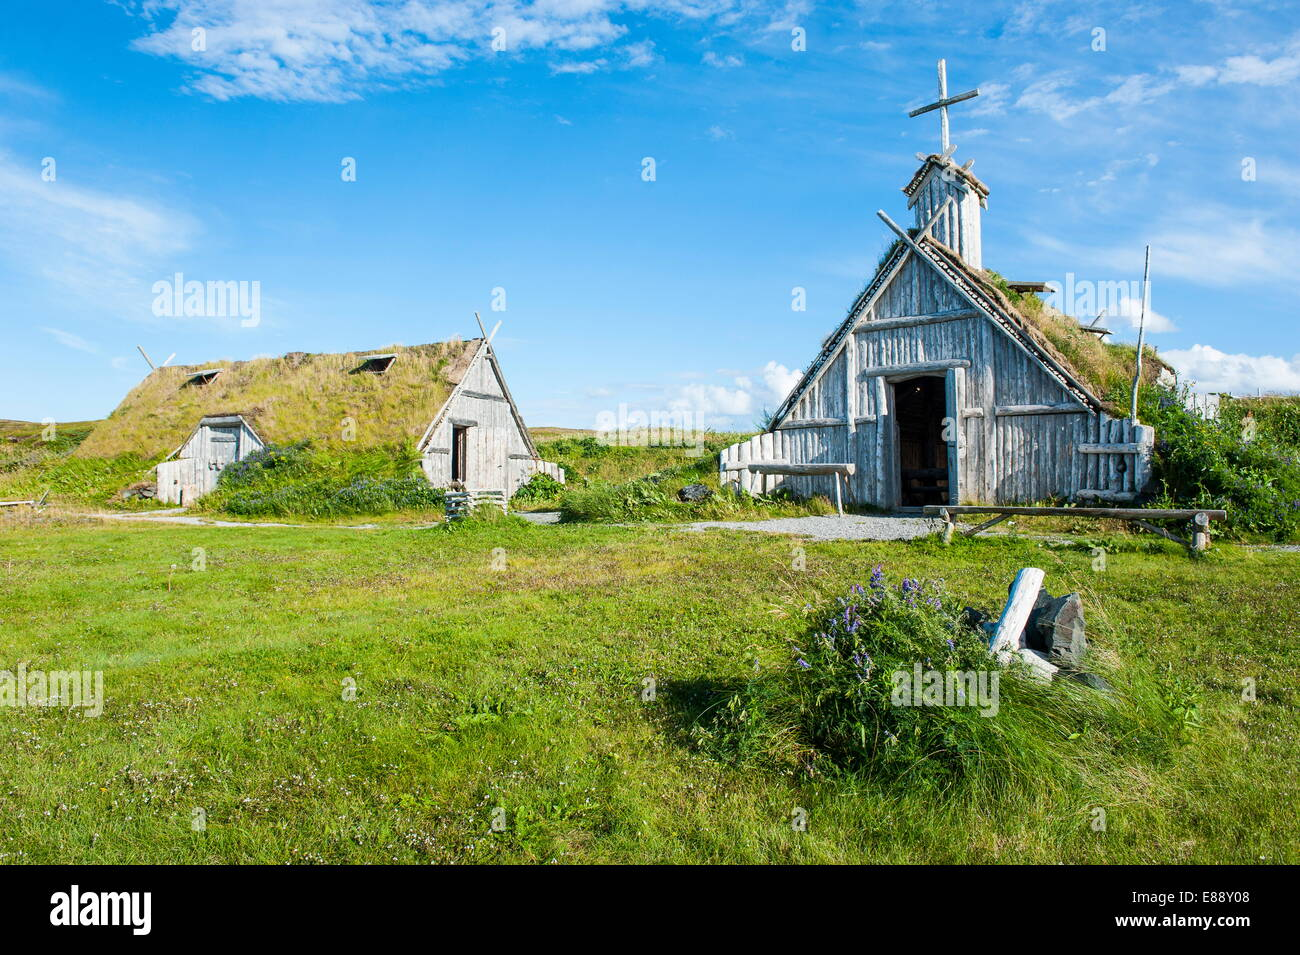 Traditional Viking buildings in the Norstead Viking Village and Port of Trade reconstruction, Newfoundland, Canada - Stock Image